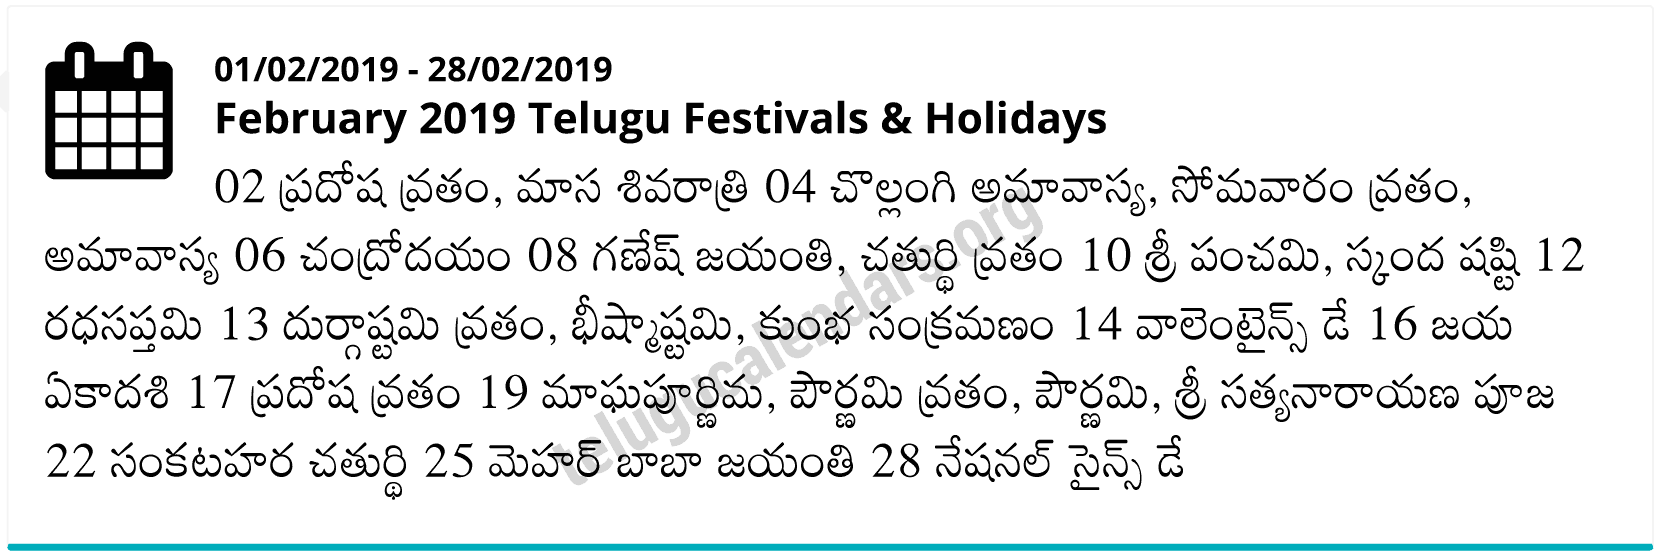 Telugu Festivals 2019 February (IST)